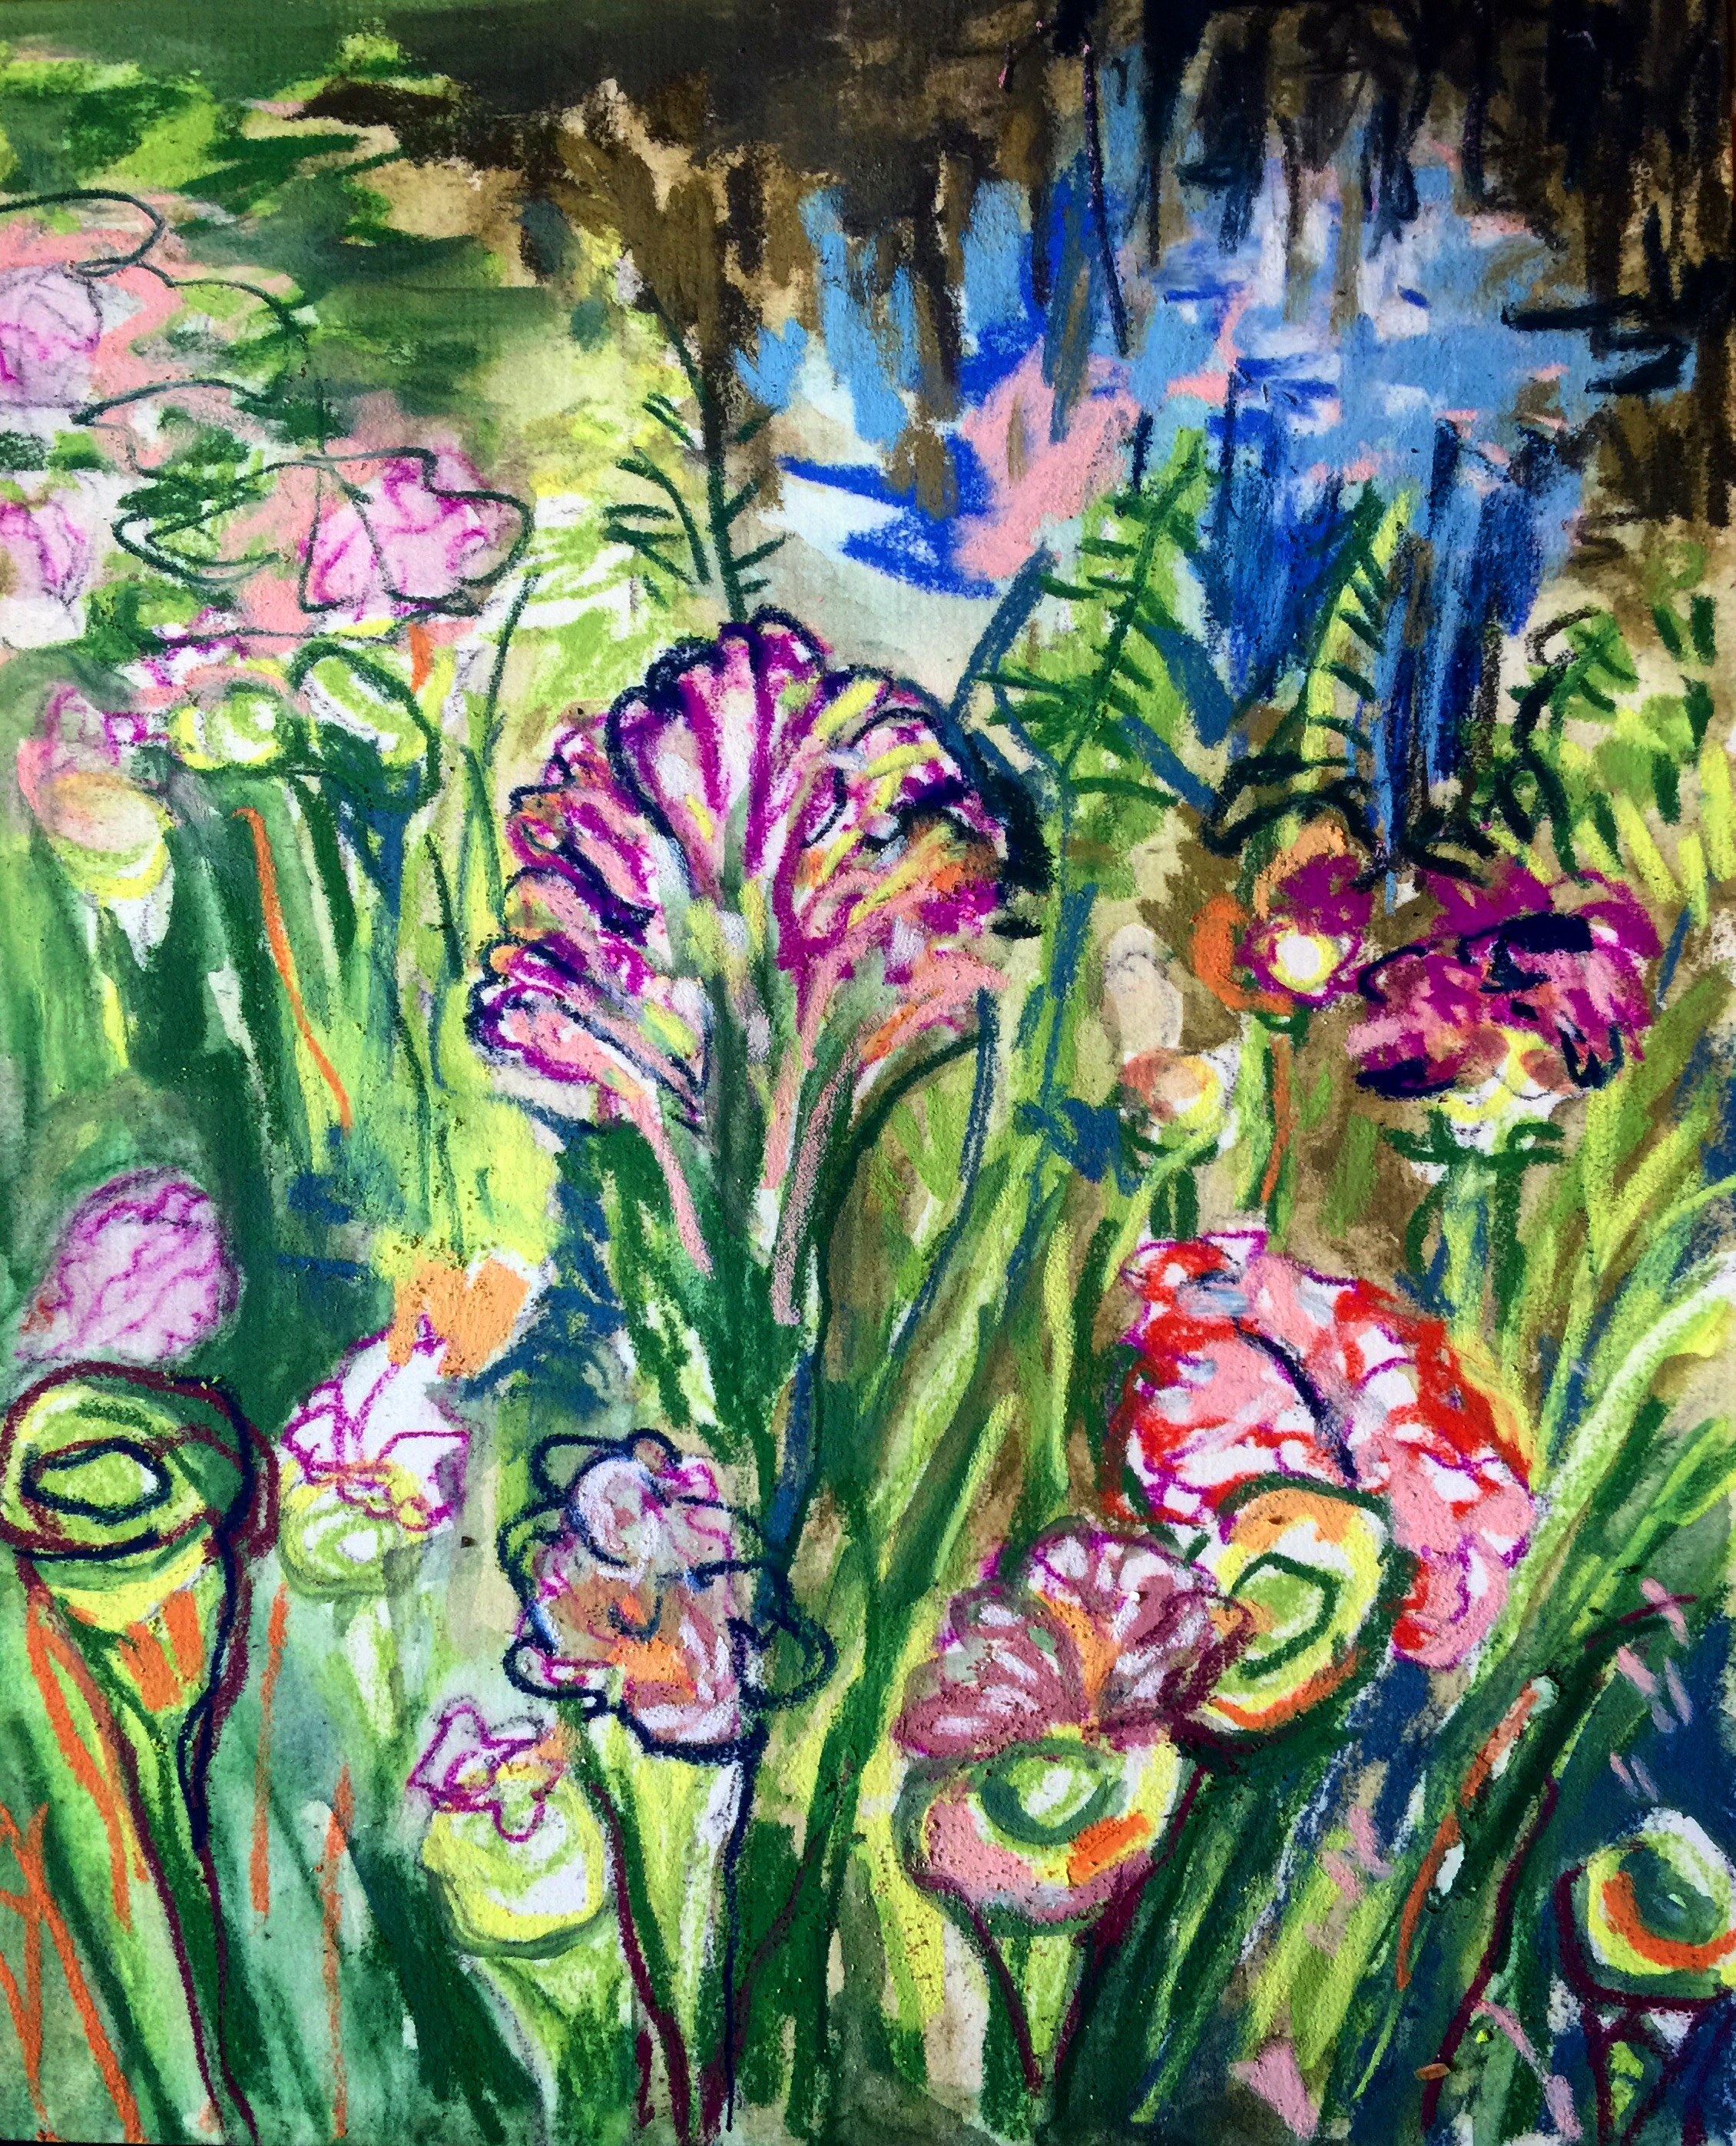 pastel sketch of flowers from a recent trip to Philly to see my cousin. He took me to these gardens with these amazing flowers. I was inspired to sketch them.